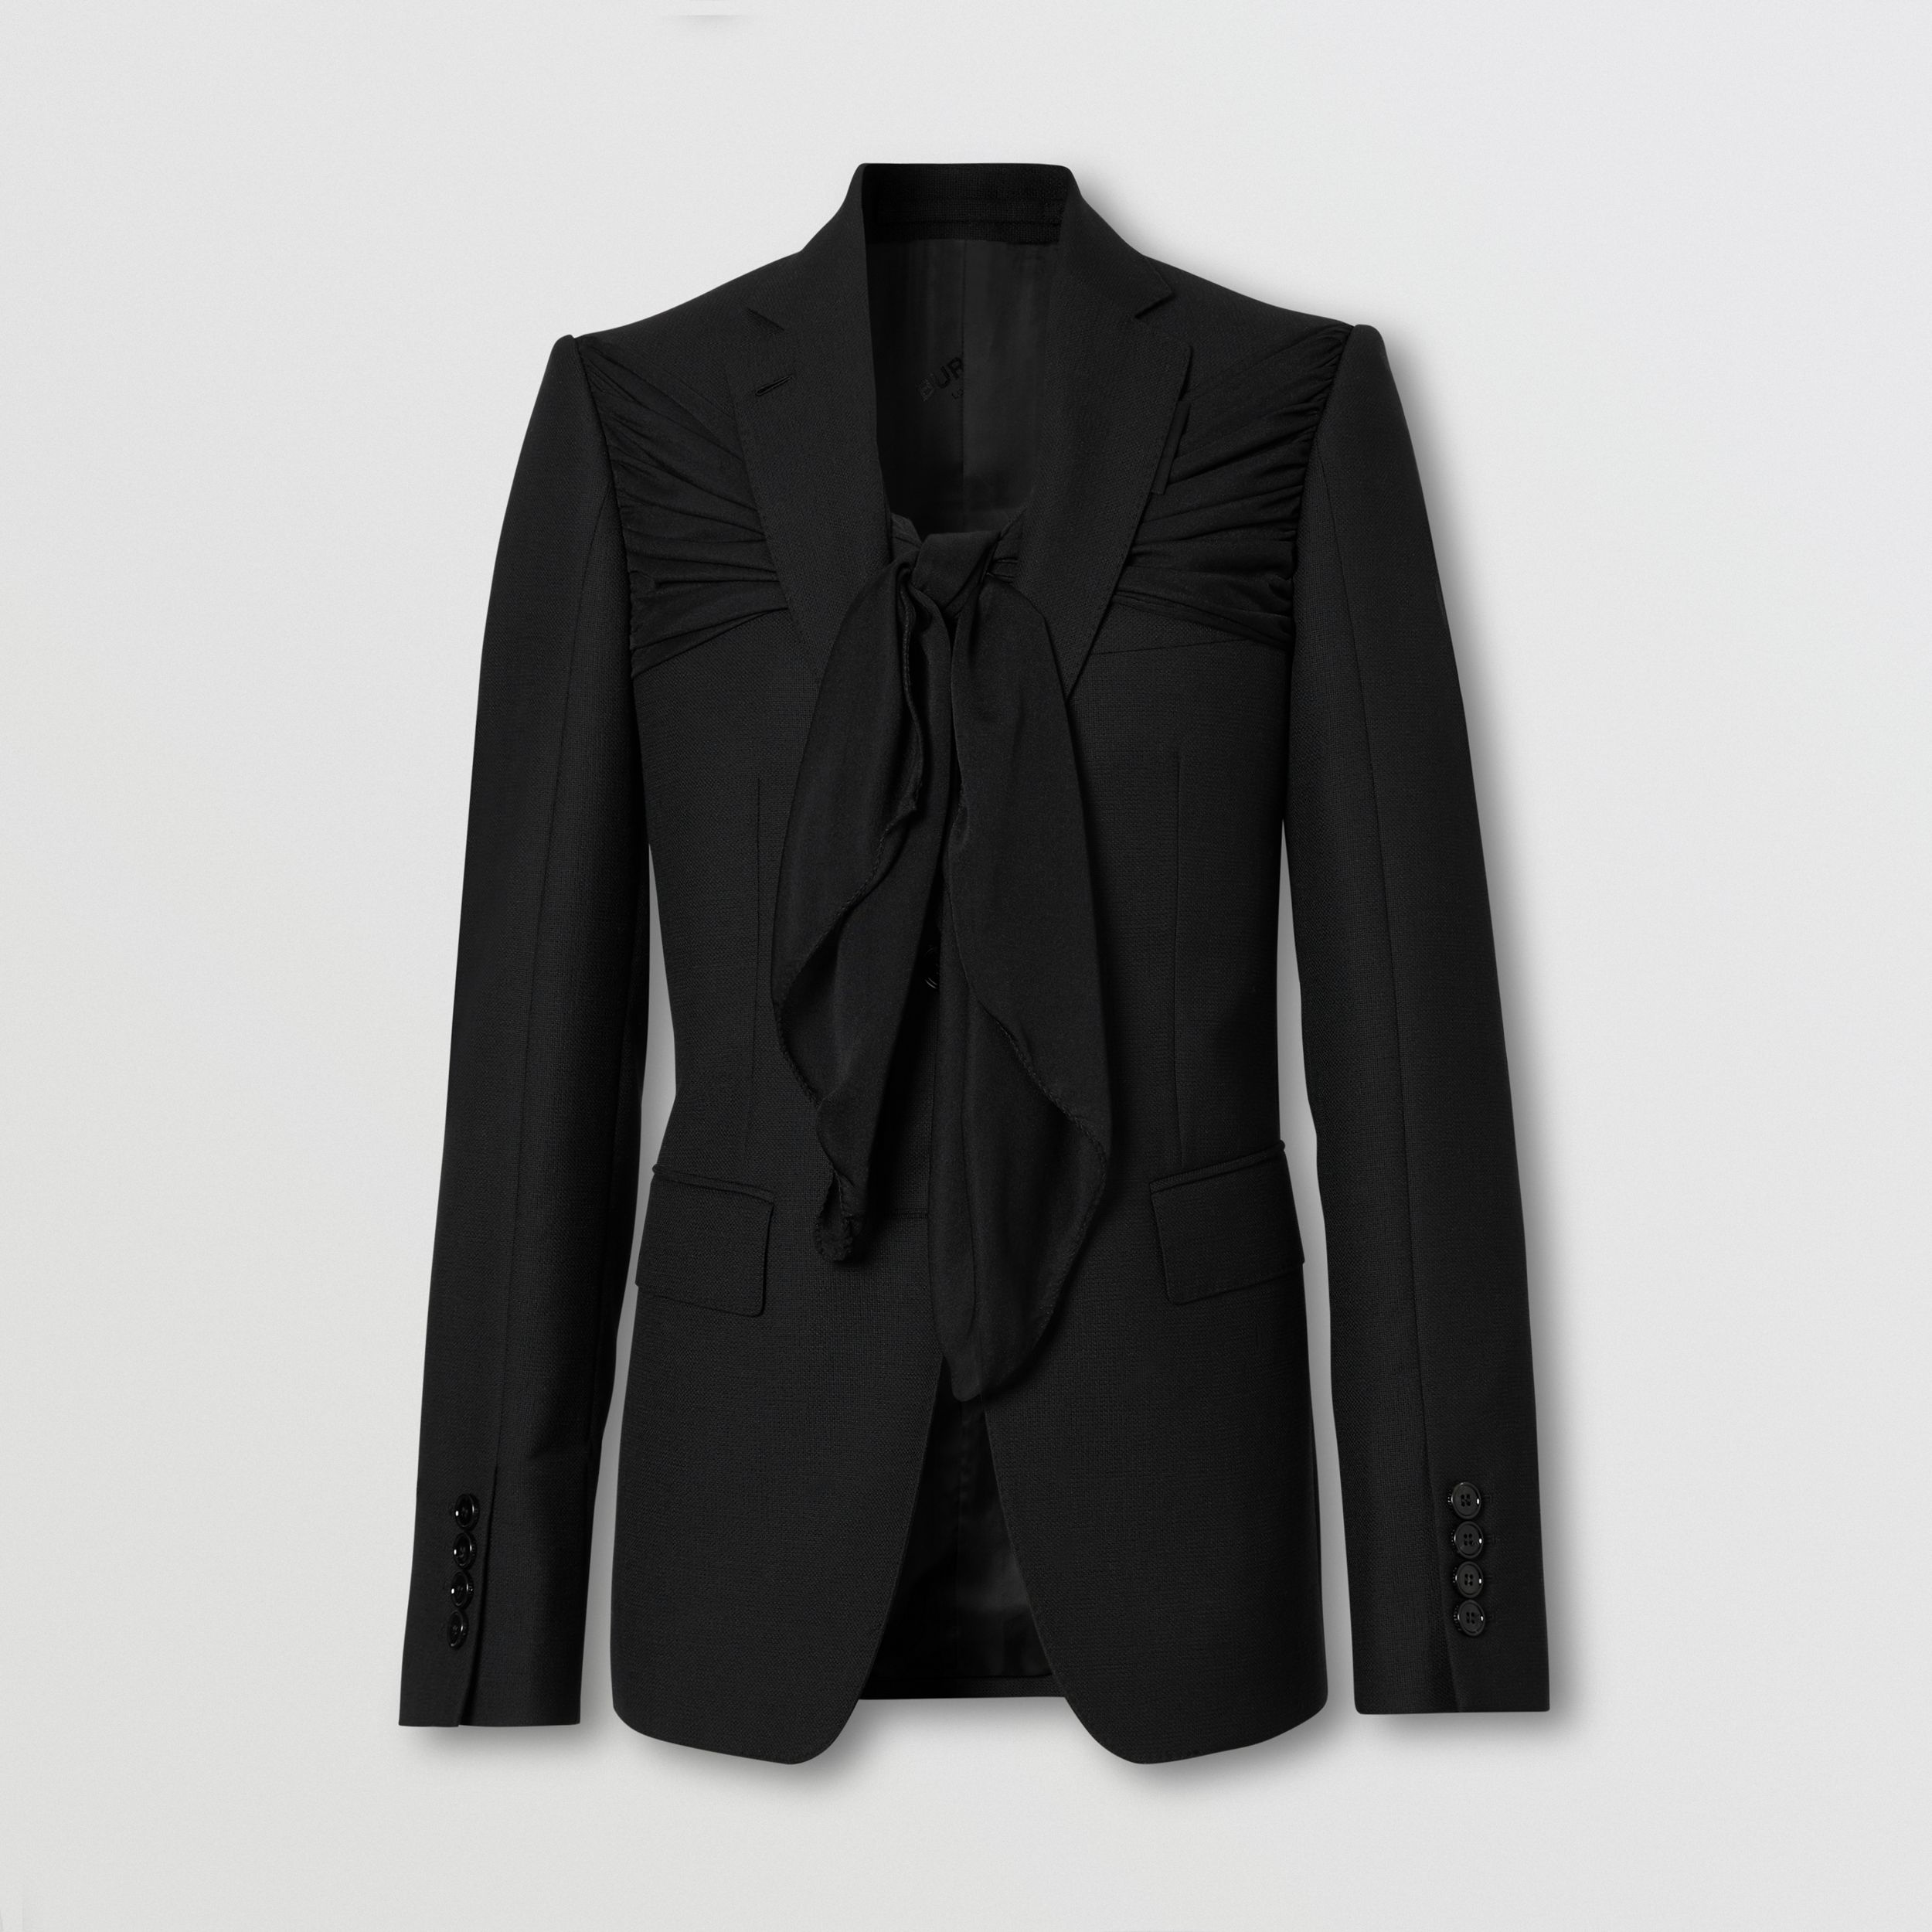 Jersey Sash Detail Wool Tailored Jacket in Black - Women | Burberry Canada - 4